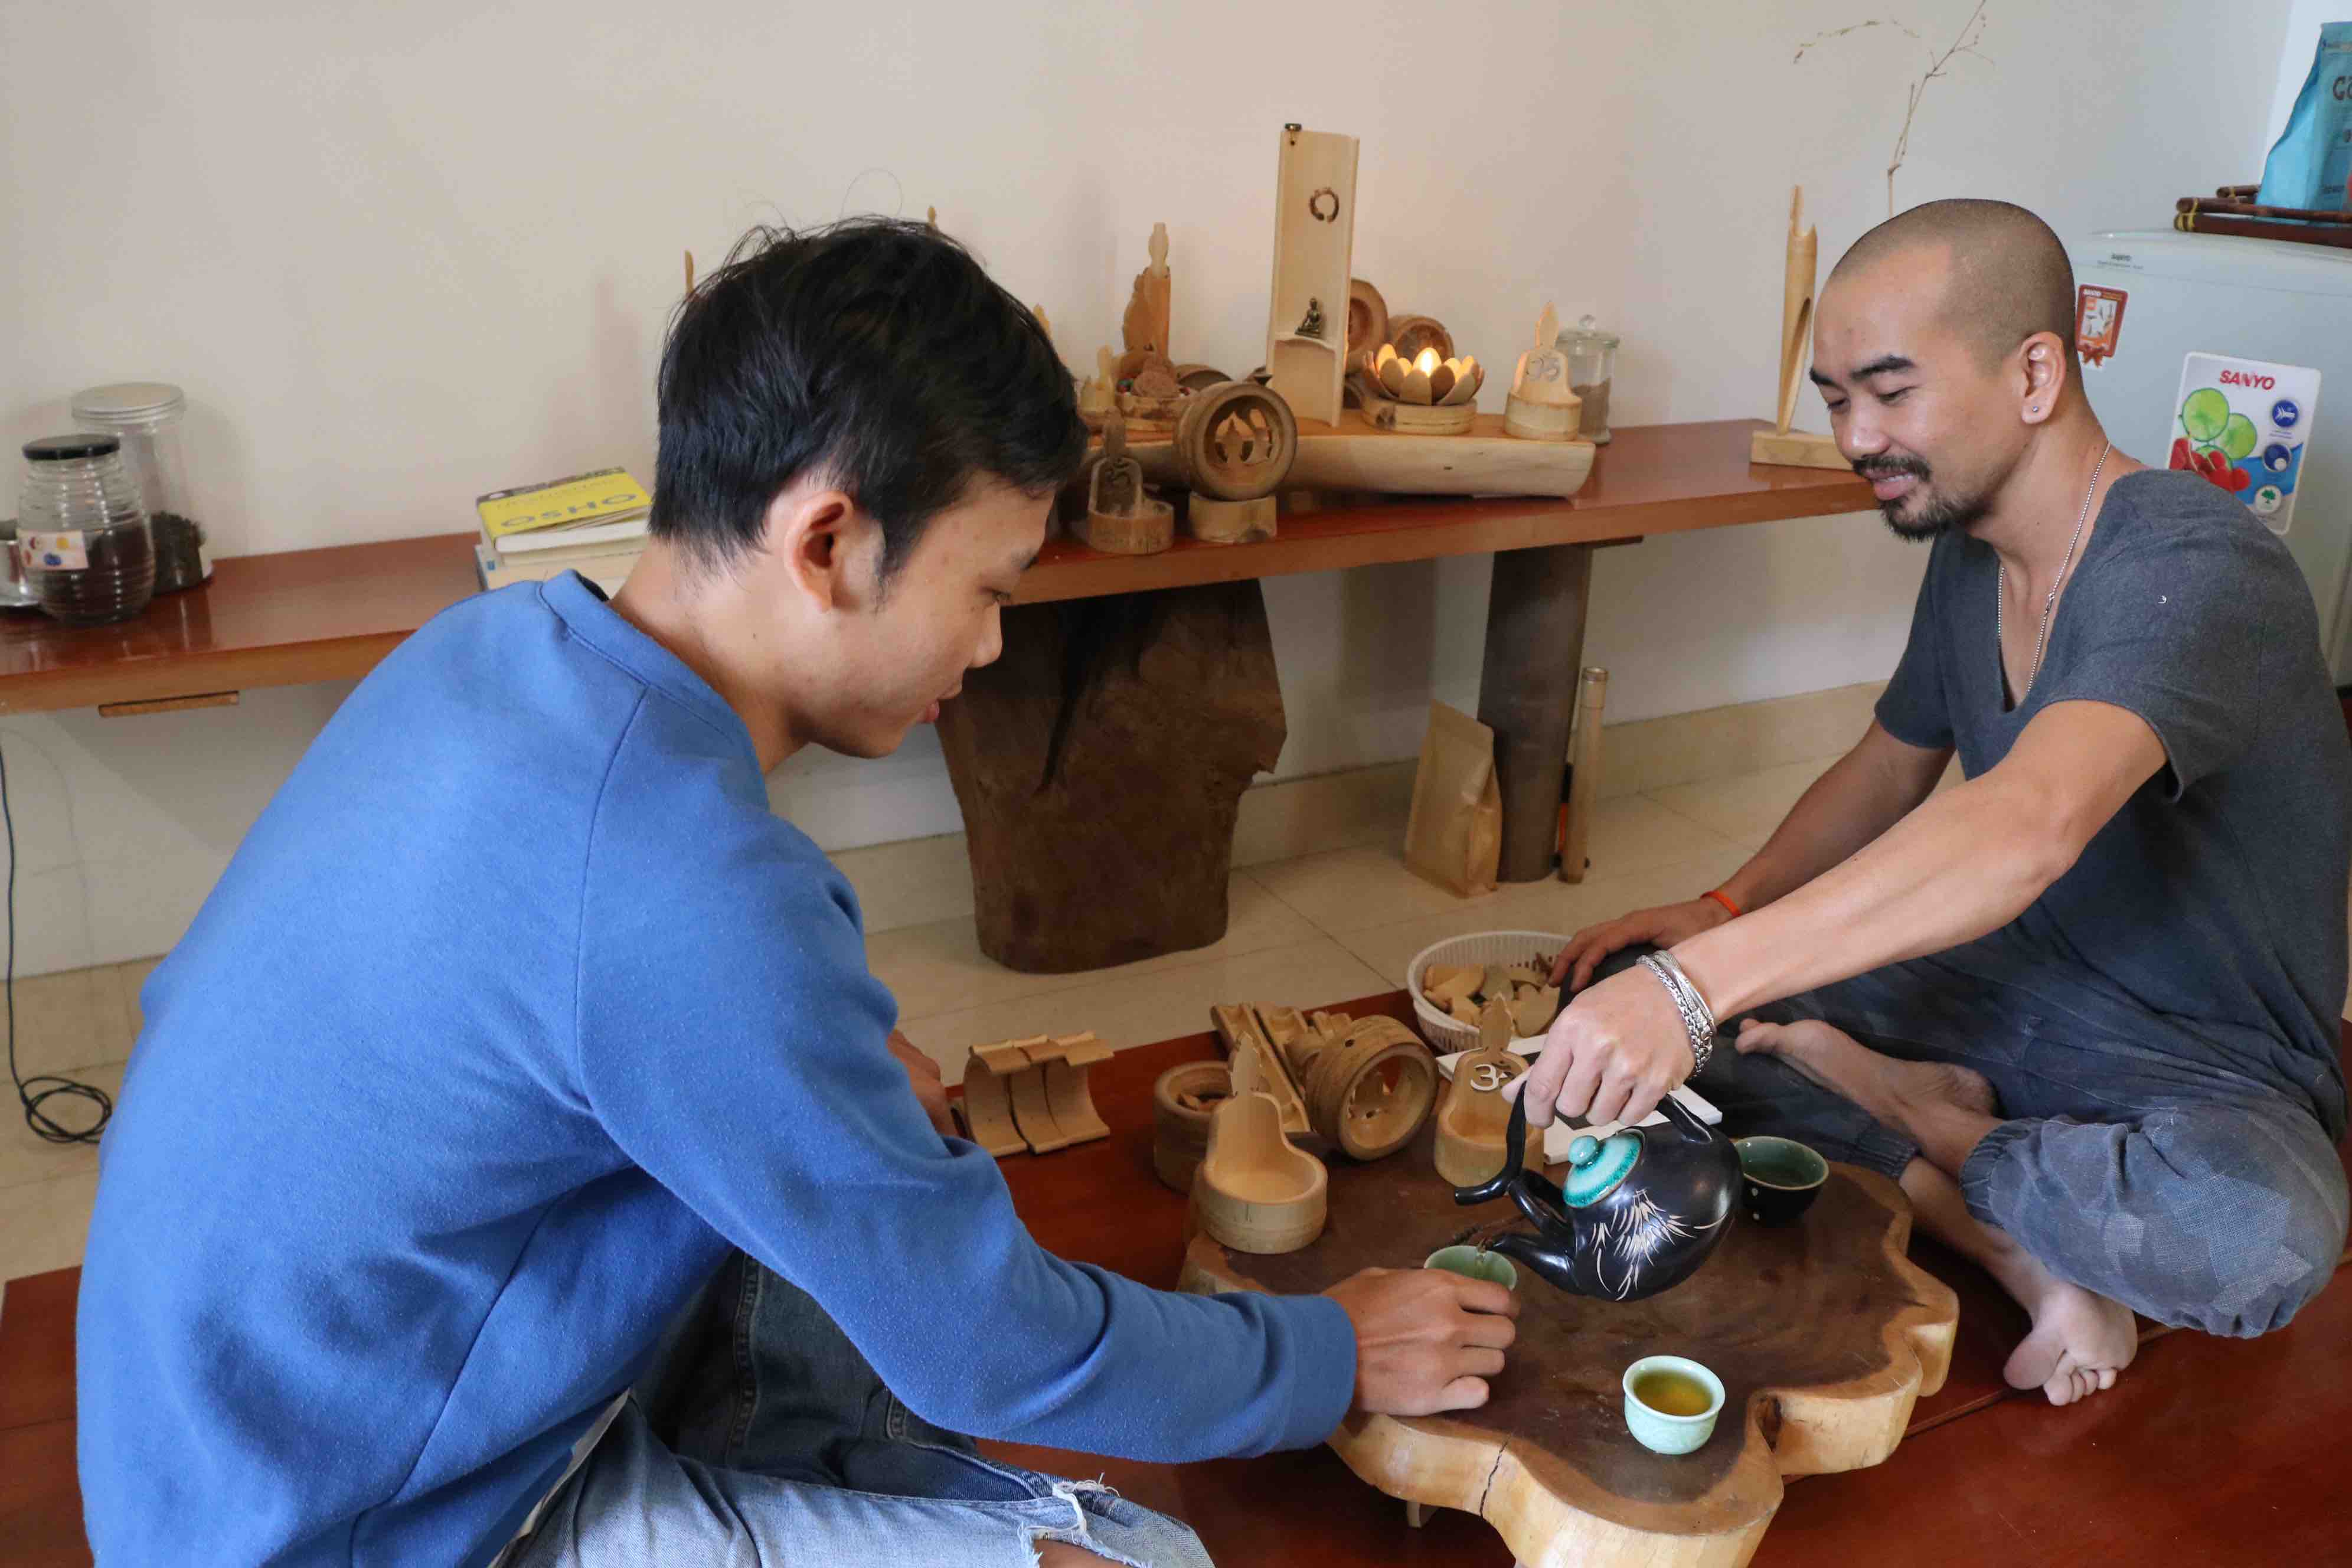 Customer Nguyen Huy Hung (left) visits the workshop to purchase decorative products and drink the tea with artist Nguyen Manh Cuong (right). Photo: Hoang An / Tuoi Tre